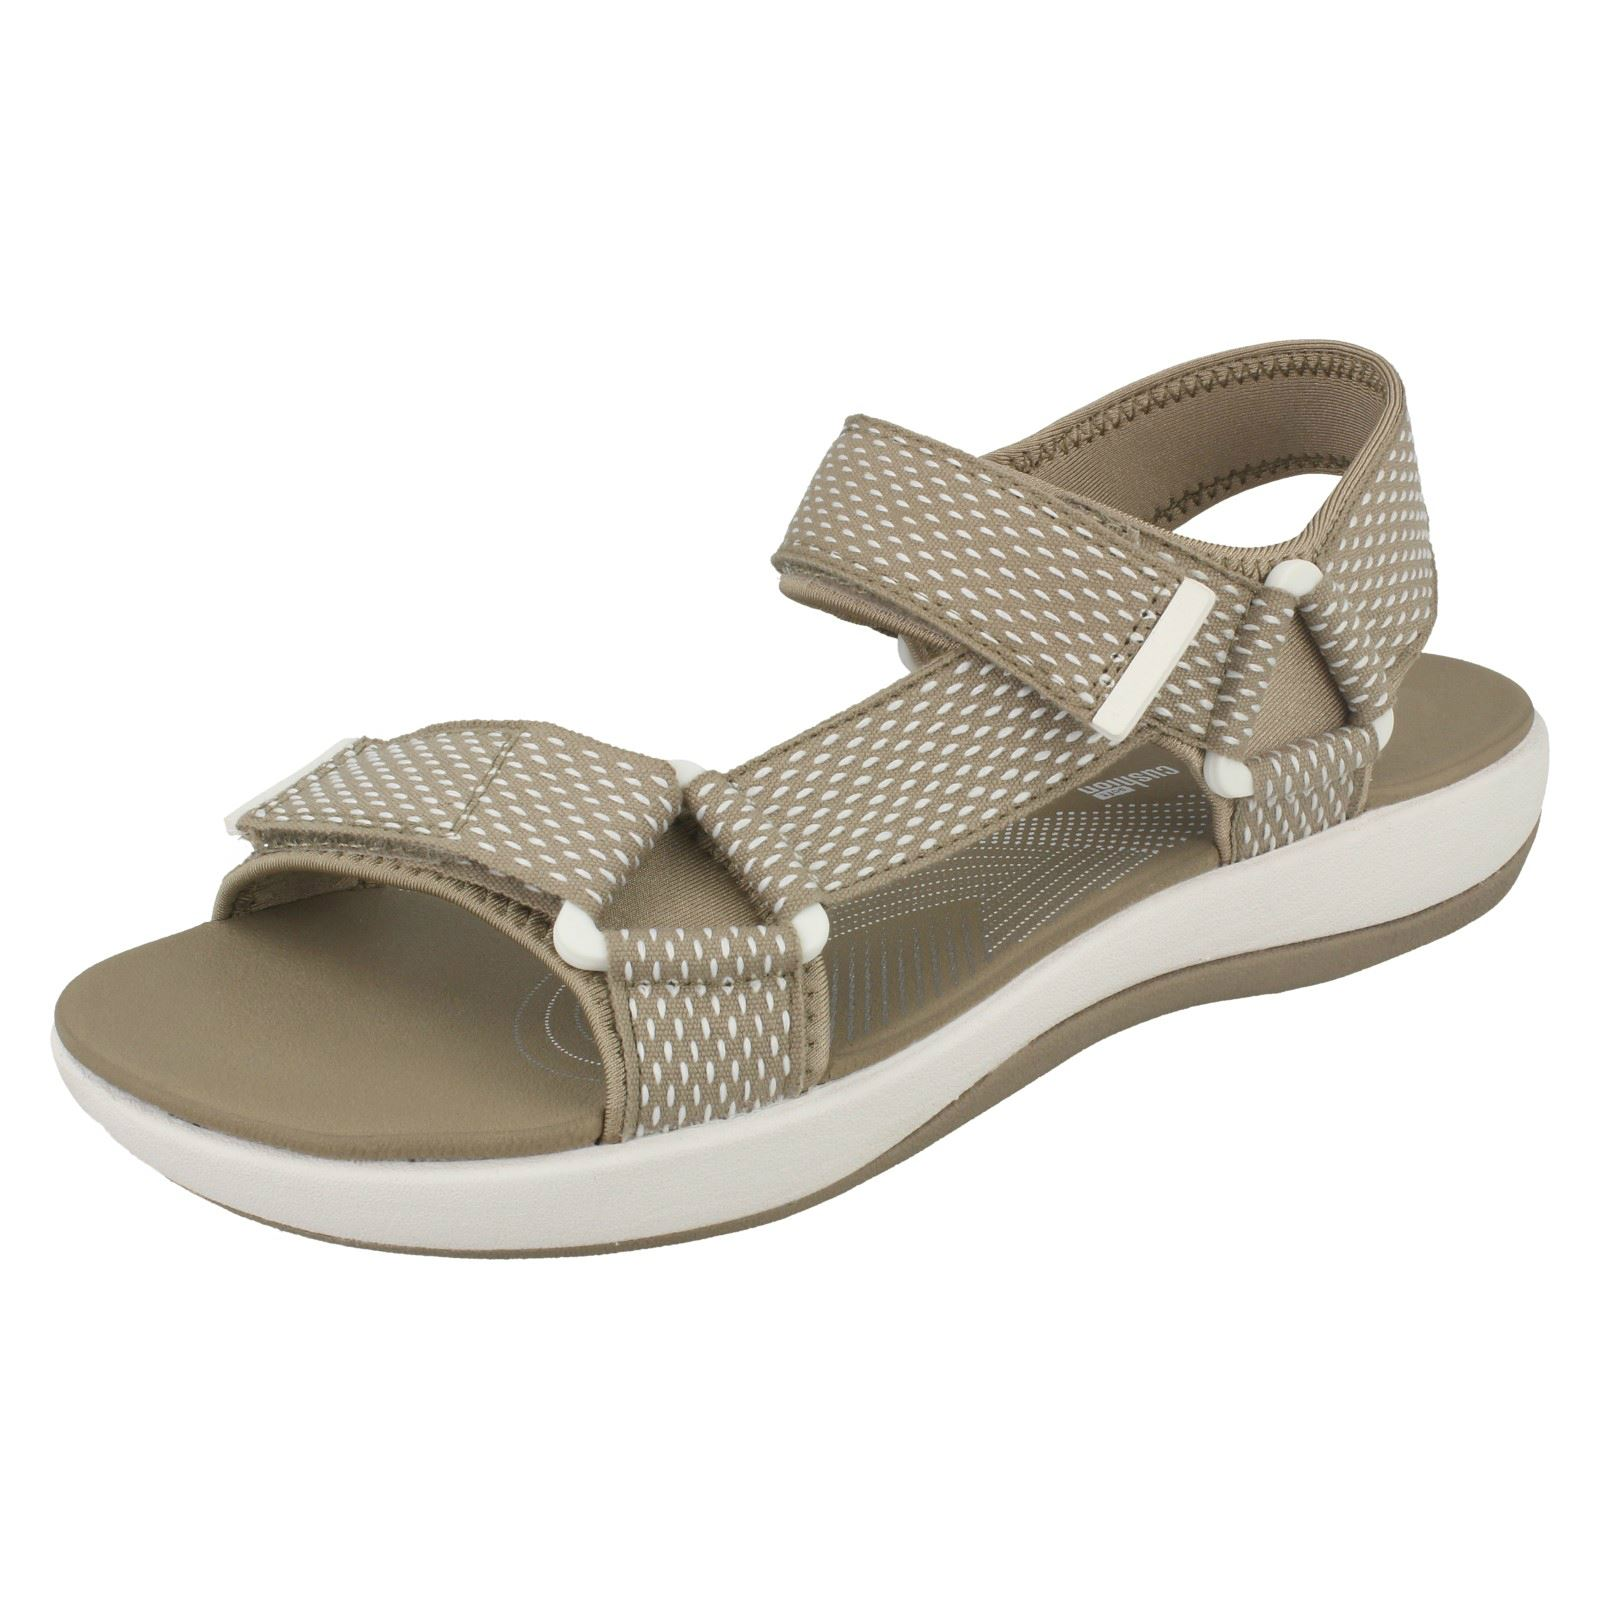 donna CLARKS Brizo CADY casual cloudsteppers Sandali